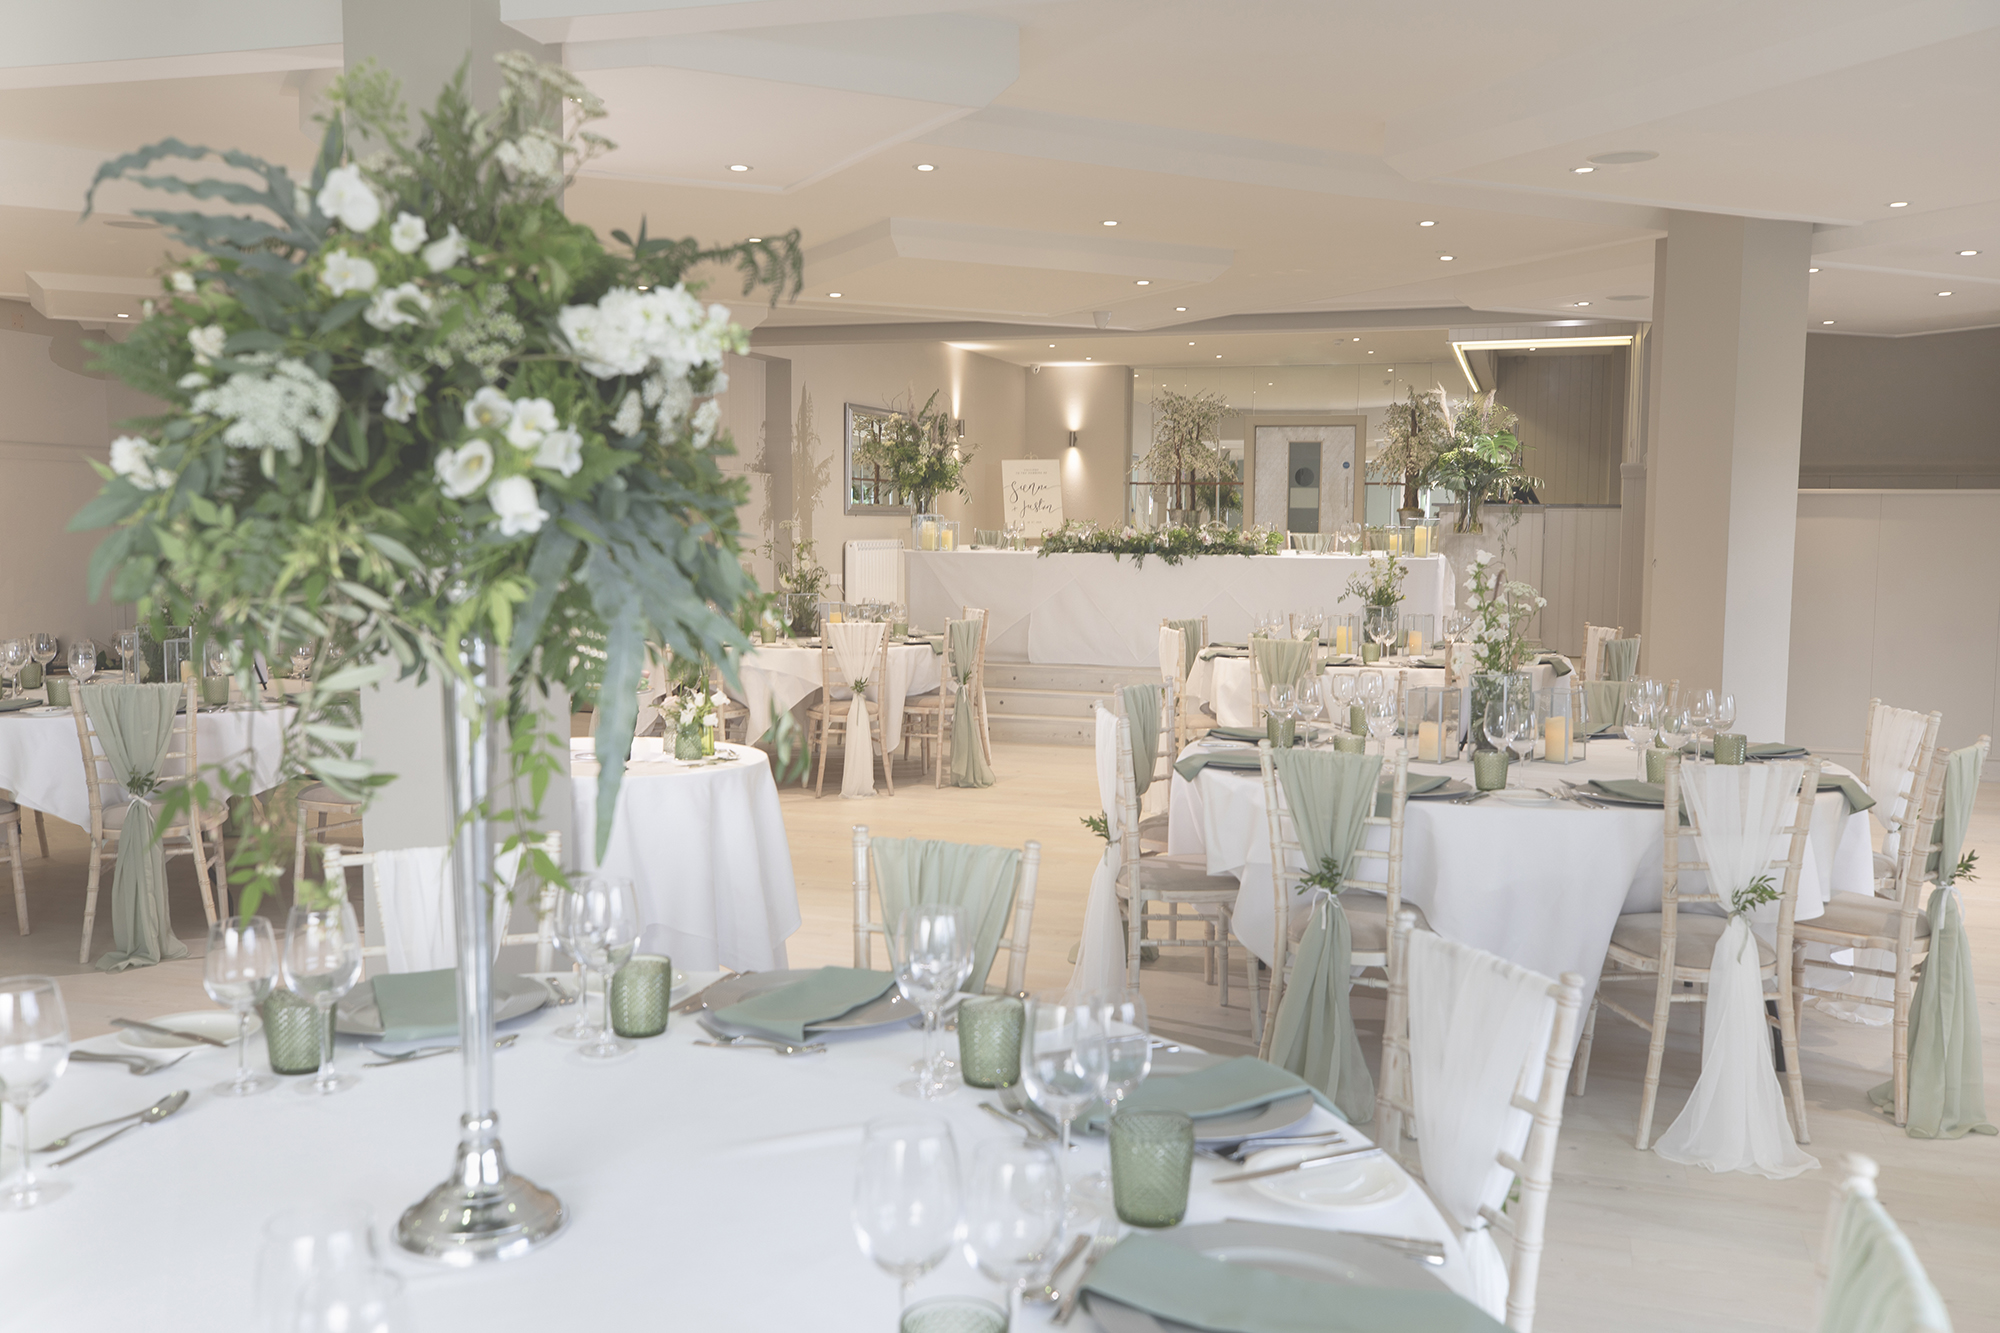 Beautiful laid tables and flowers ready for the wedding breakfast, in the main function room at All Saints Hotel